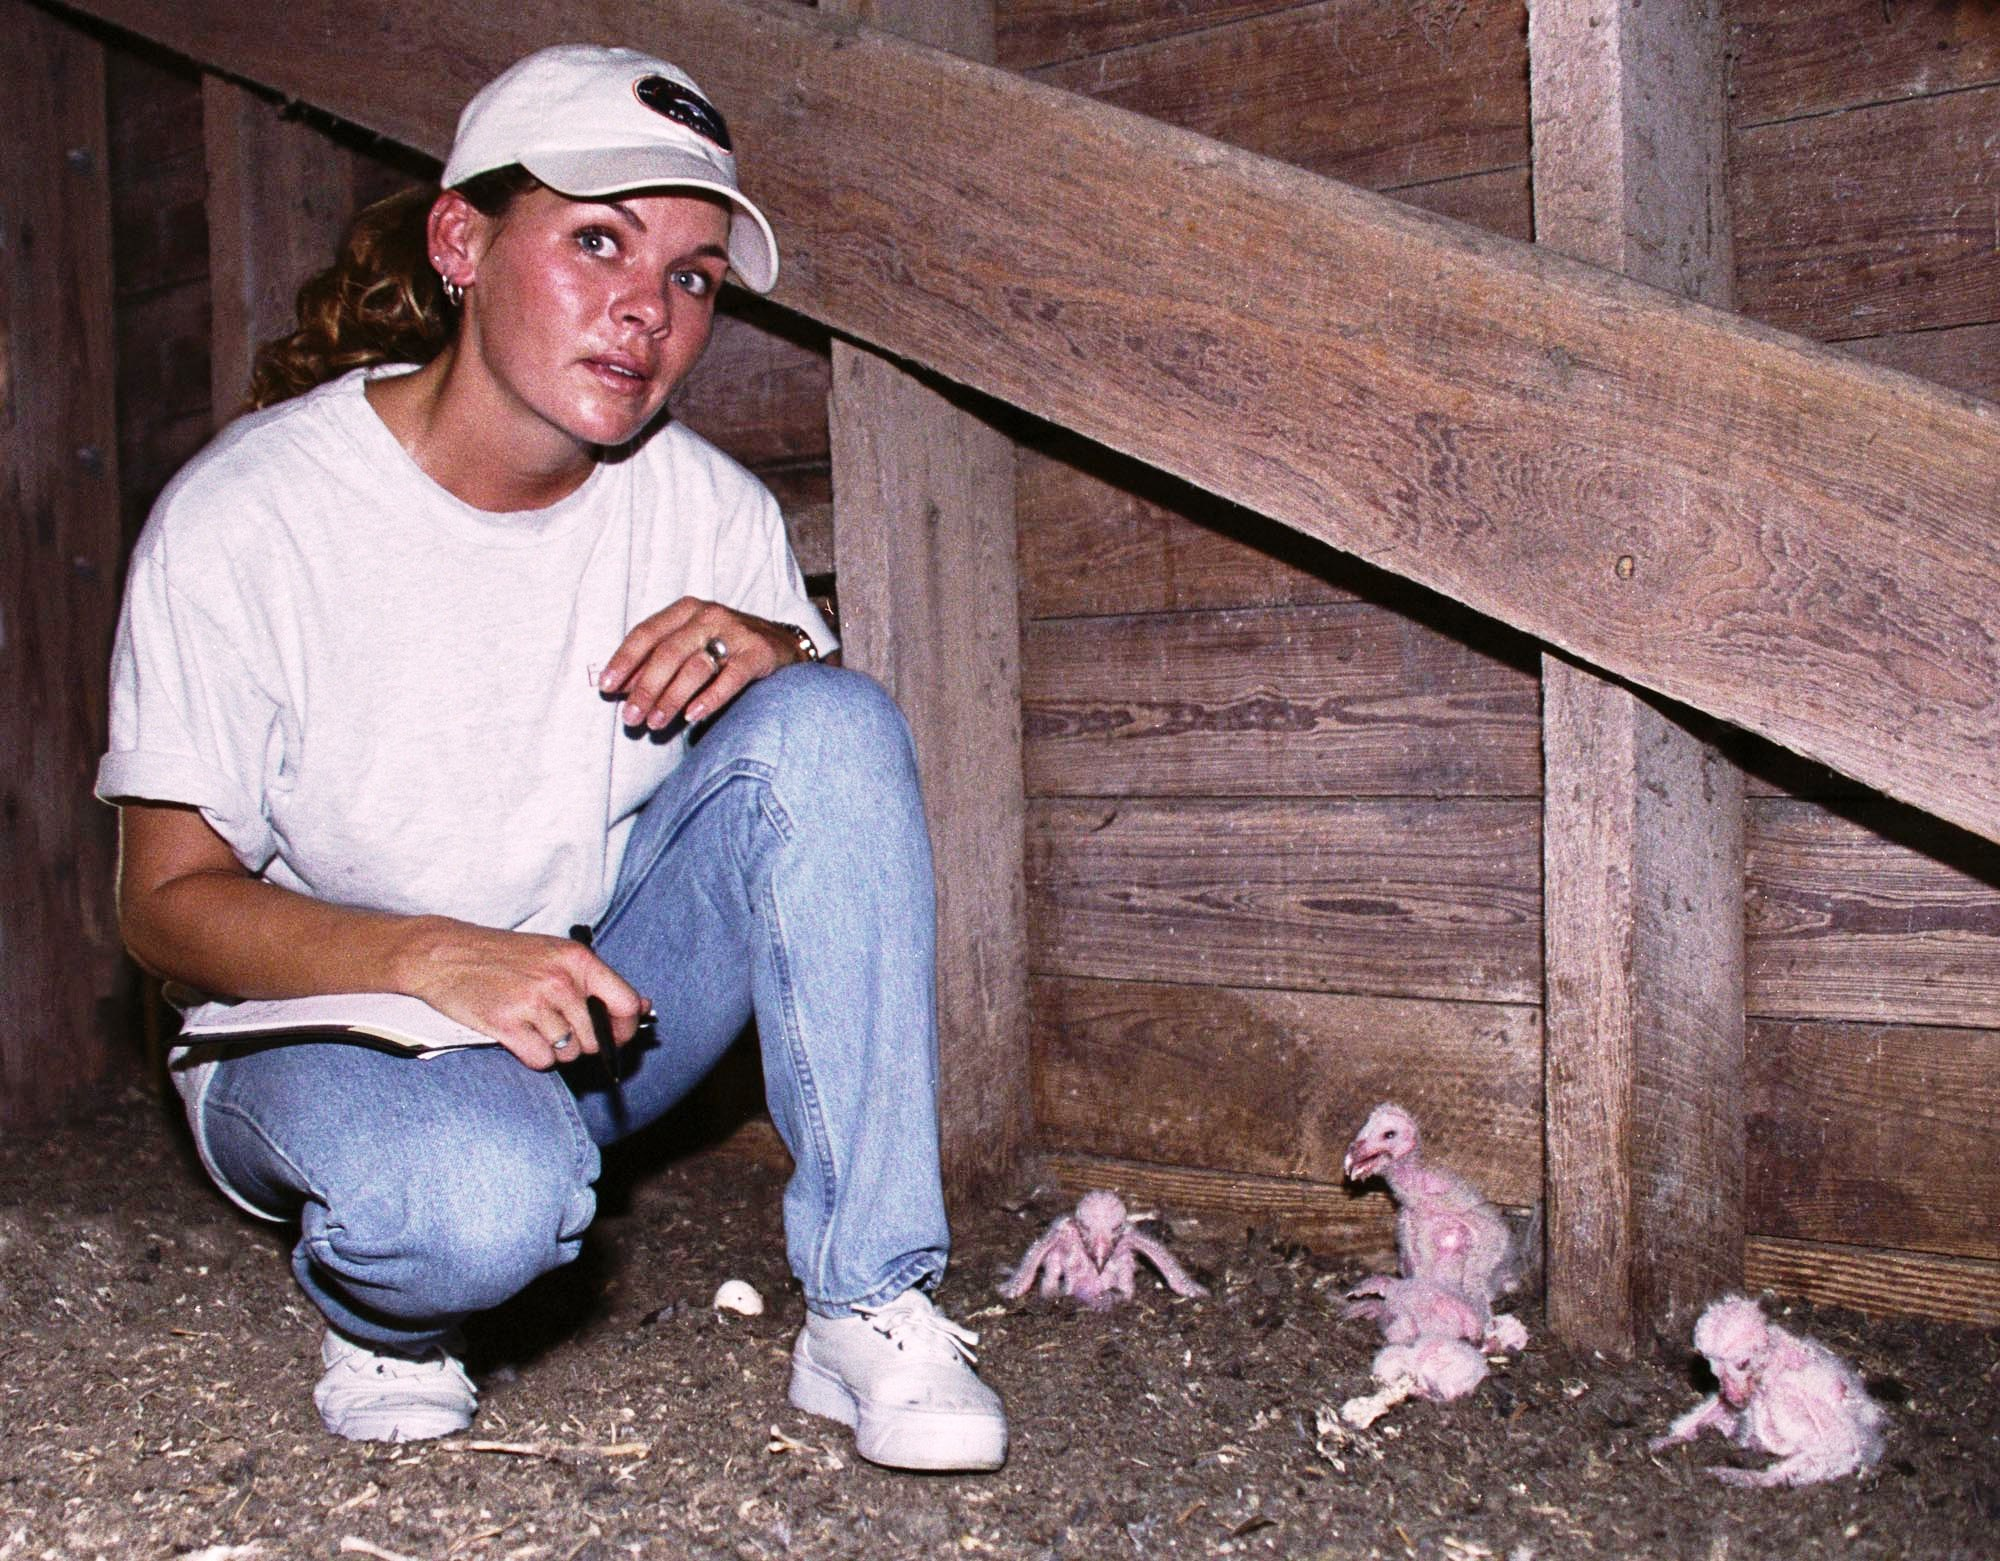 BELLE GLADE---University of Florida graduate researcher Cosandra Hochreiter checks on a barn owl nesting site on the grounds of UF's Everglades Research and Education Center. The five owlets in this corner were among several babies and their parents nesting in this abandoned barn at the research center. Researchers are trying to boost the population of barn owls in the Everglades Agricultural Area because they are a natural form of rodent control. Rodents can cause up to $  30 million damage per year to sugar cane and vegetable crops, and a nesting pair of barn owls can eat almost 3,000 rodents over the course of a year. Compliments UF/IFAS File Photo